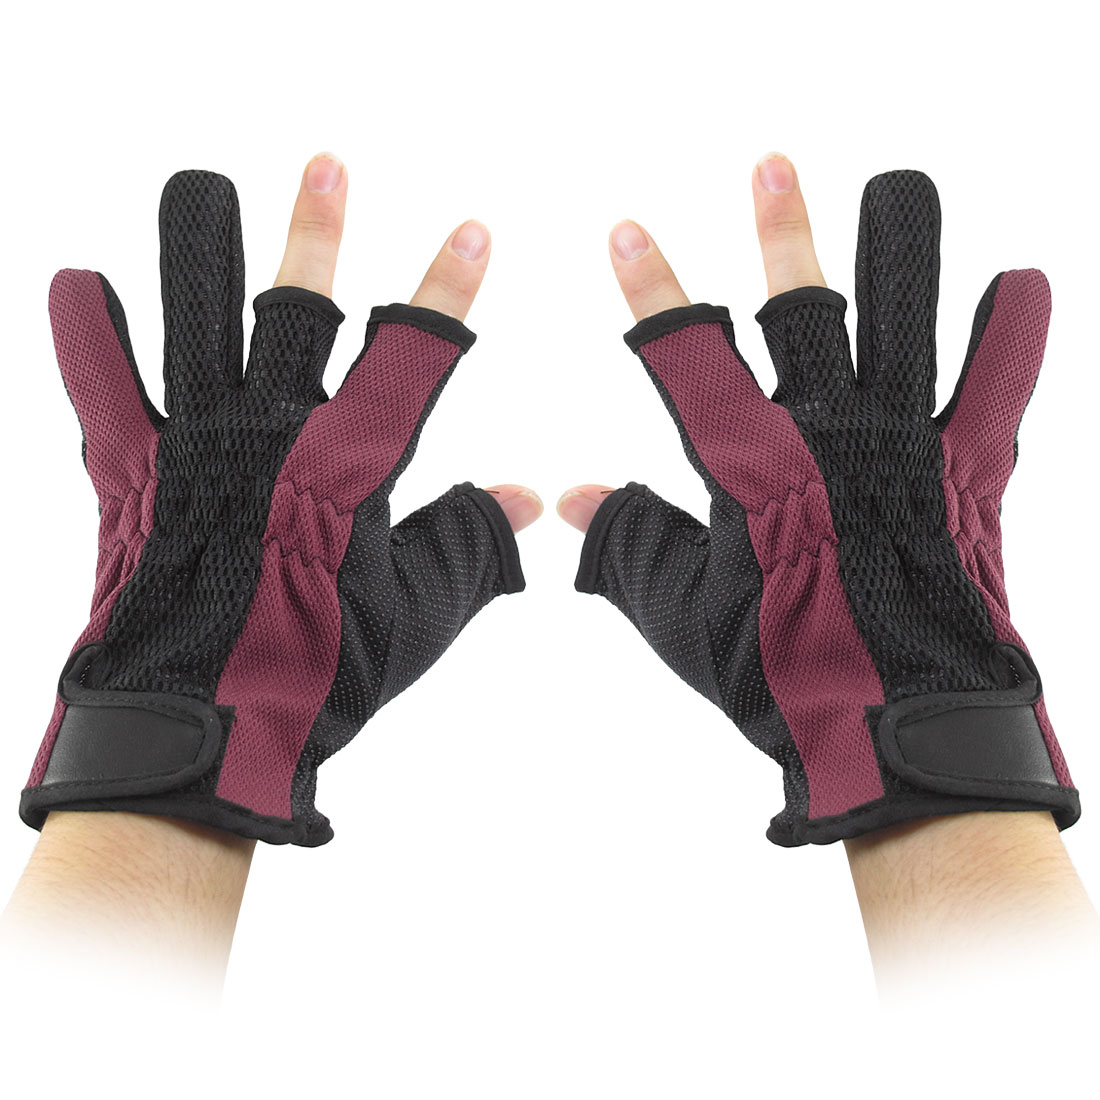 Antislip Palm Loop Hook Fastener 3 Fingerless Dark Red Black Fishing Gloves